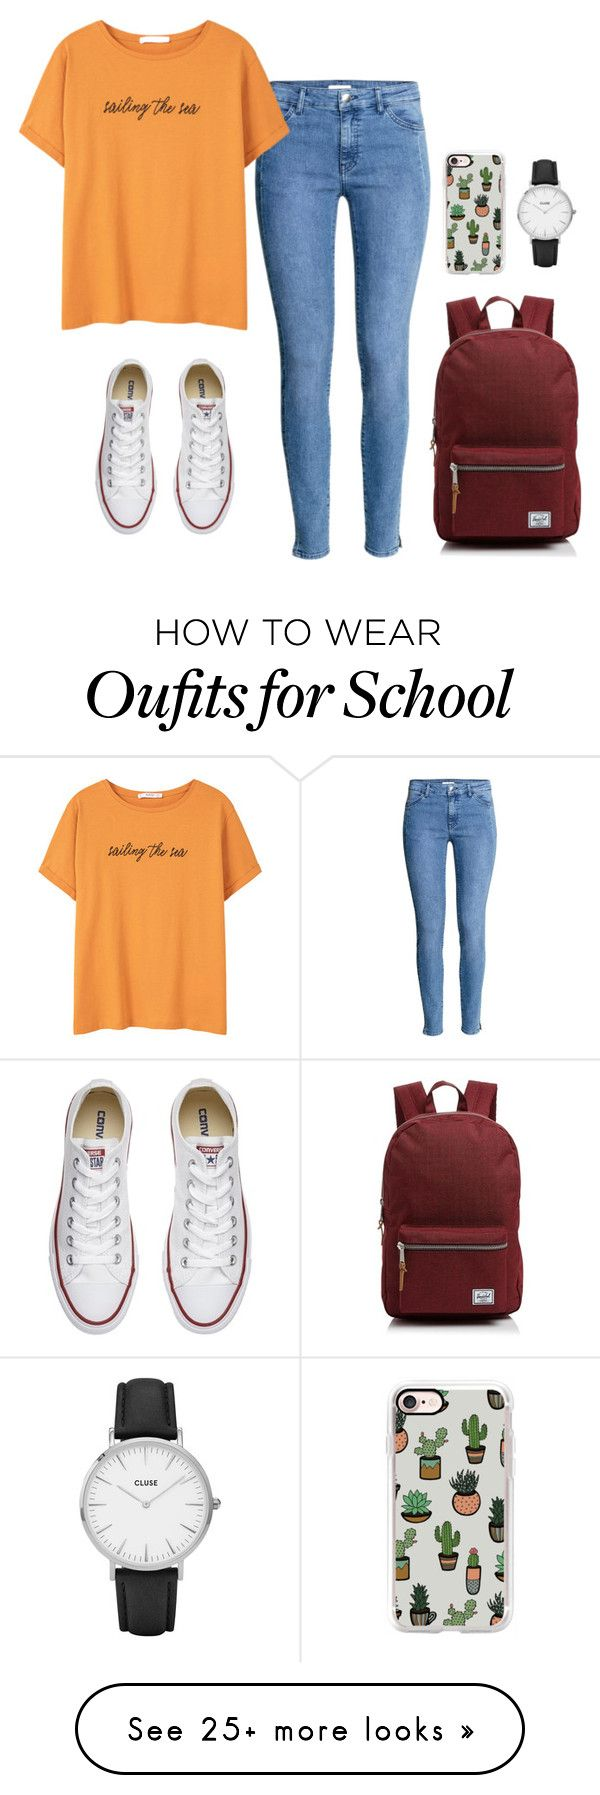 """""""Converse Chuck Taylor All Star - 16 #School"""" by inlovewithtay on Polyvore featuring H&M, MANGO, Converse, Casetify, Herschel Supply Co., CLUSE, converse and allstar"""